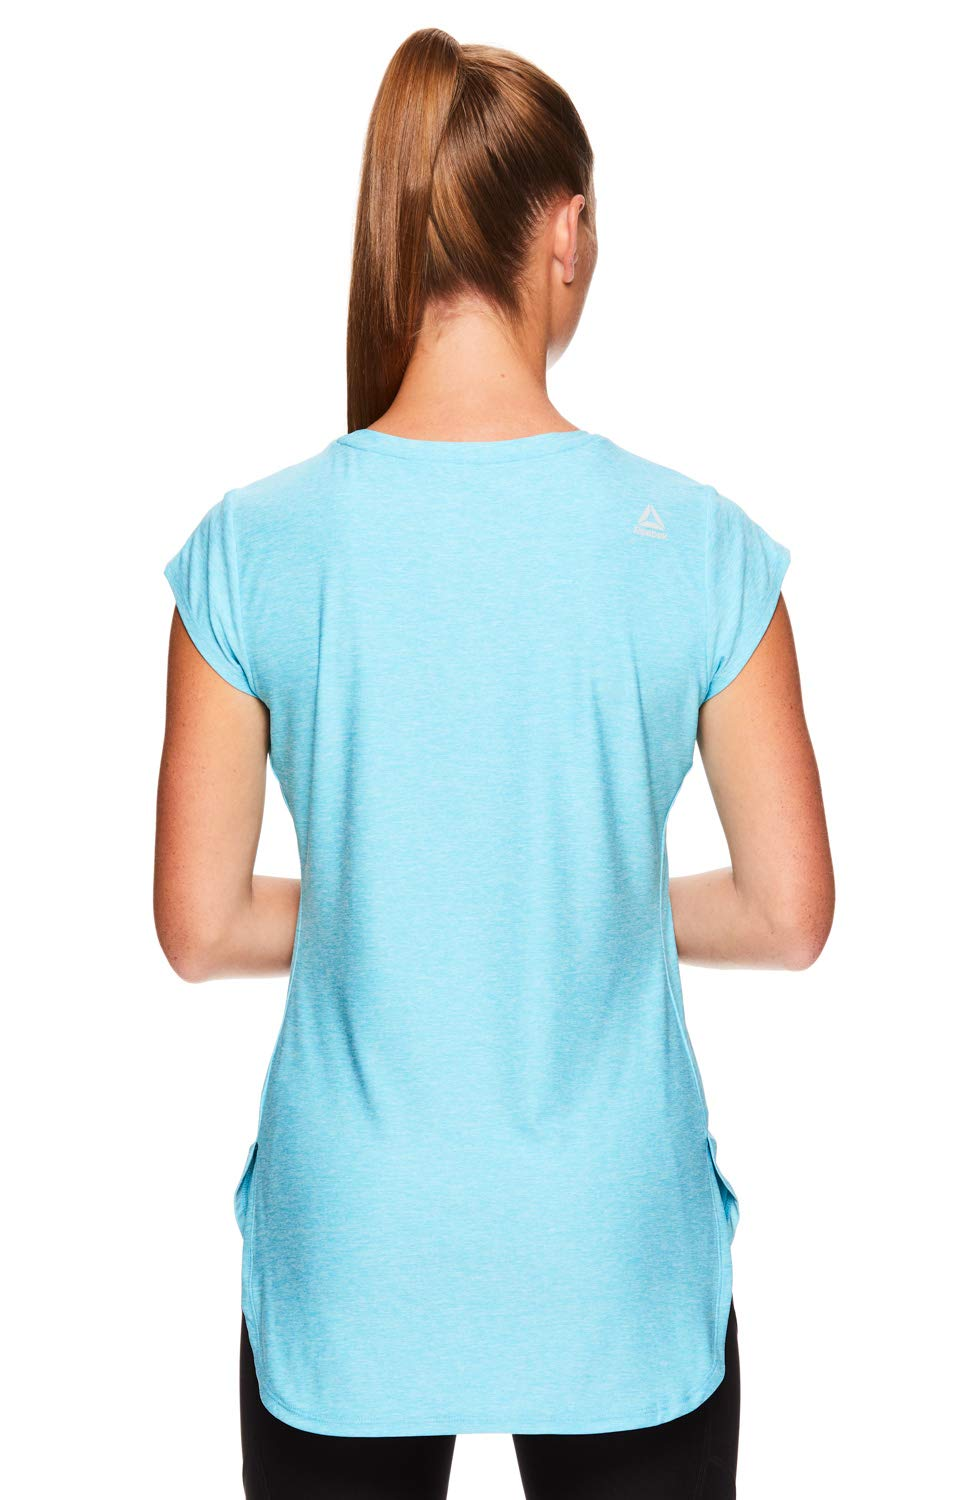 Reebok Women's Legend Performance Top Short Sleeve T-Shirt - Blue Atoll Heather, Extra Small by Reebok (Image #3)